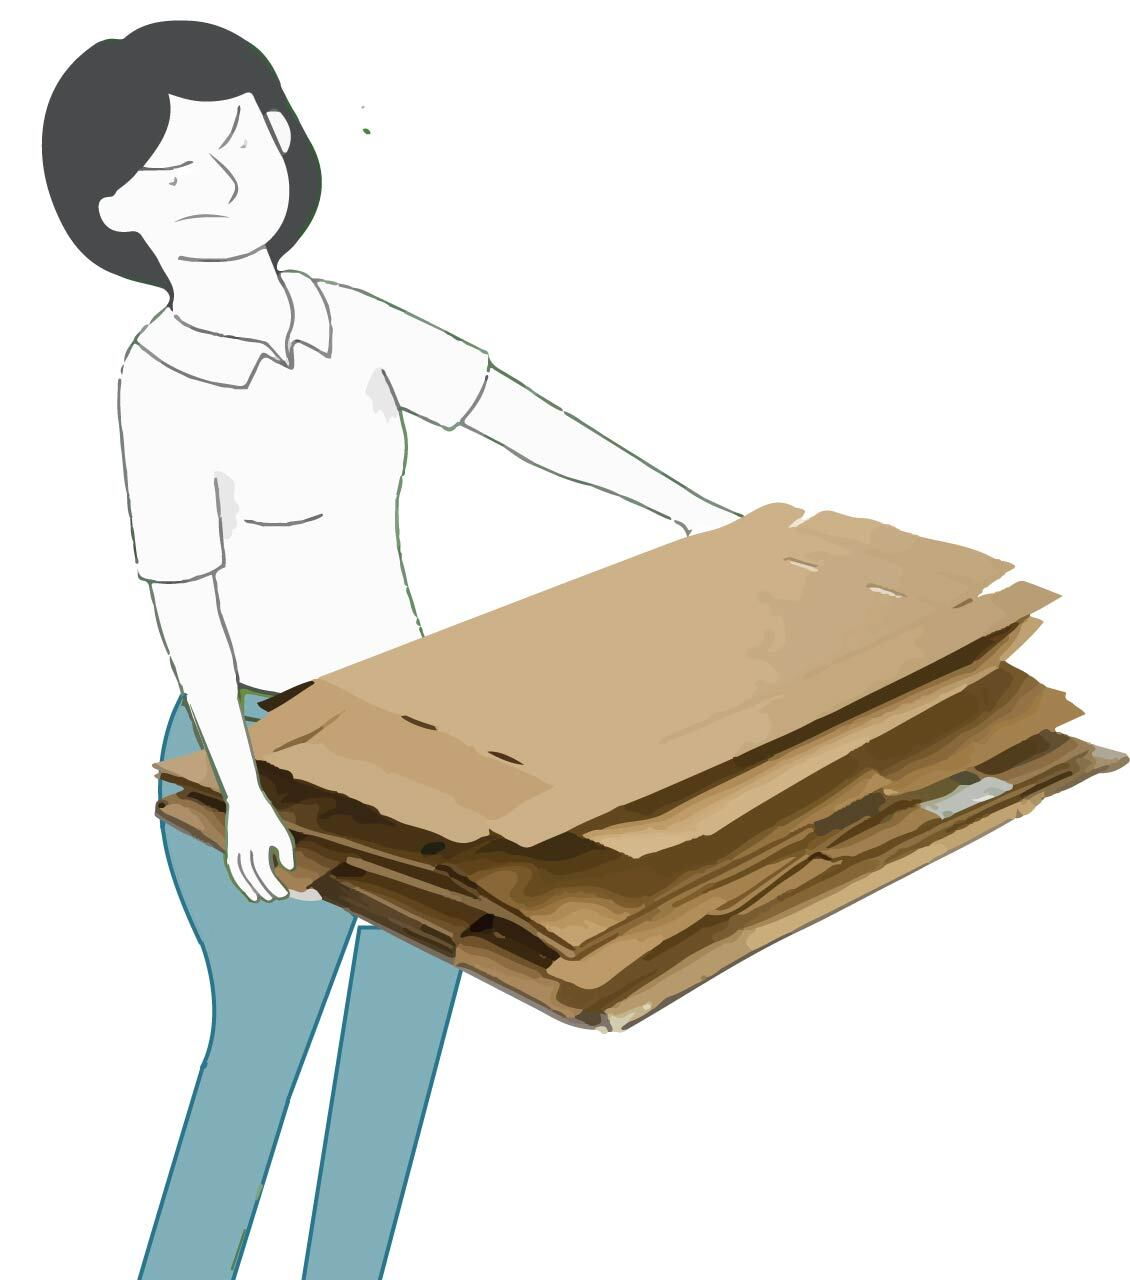 Easy Cardboard Disposal Services in West Palm Beach FL